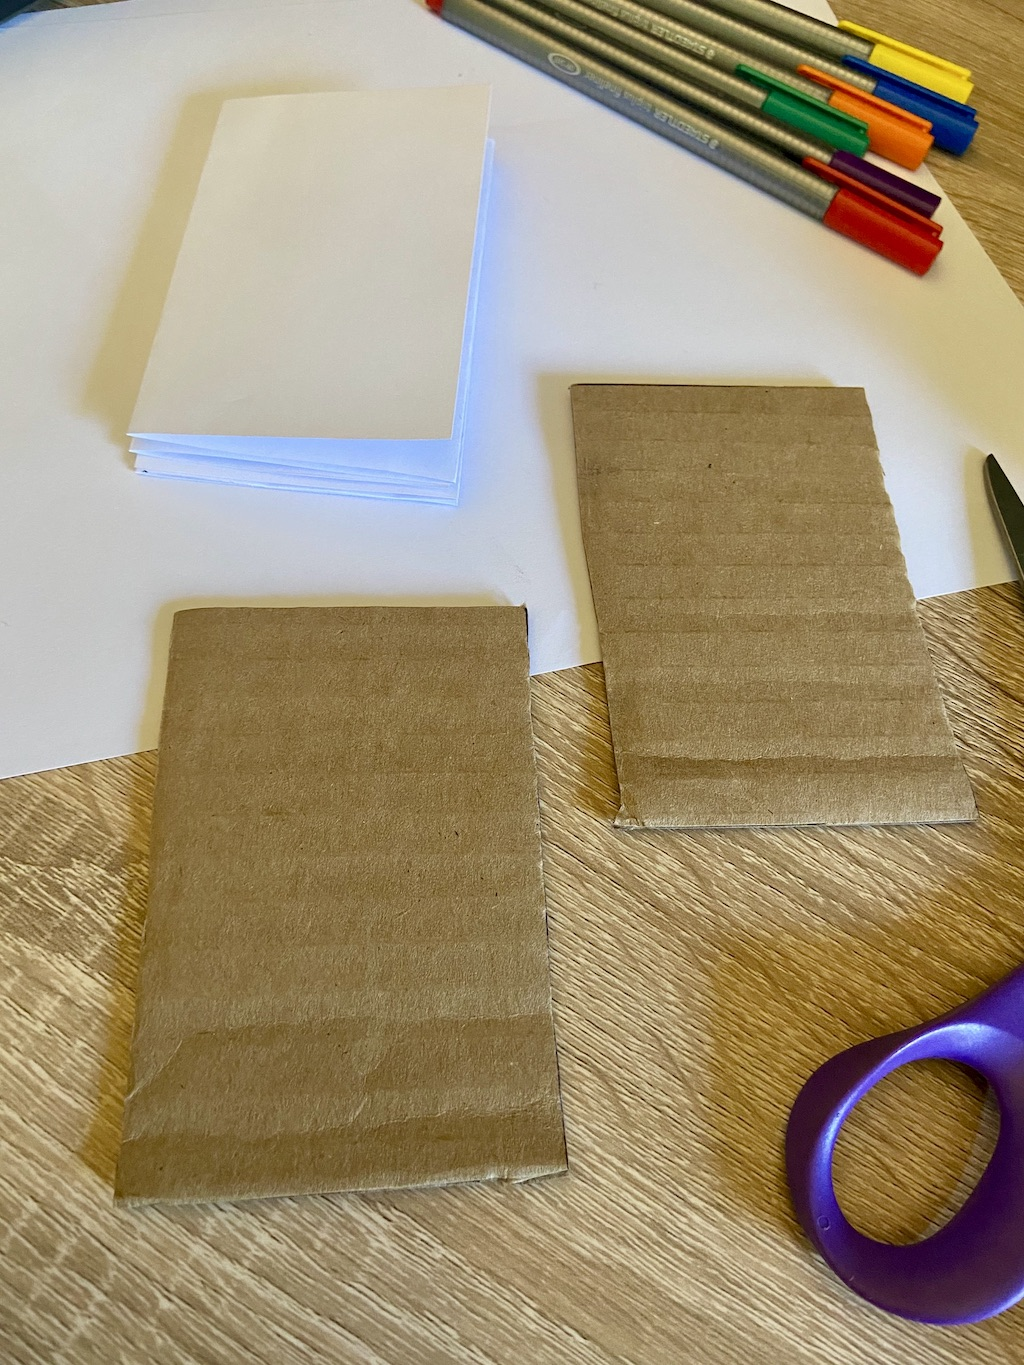 To make your book cover, take two pieces of cardboard or cardstock (you can cut up cereal boxes too!) and cut them to the same size as the accordion.